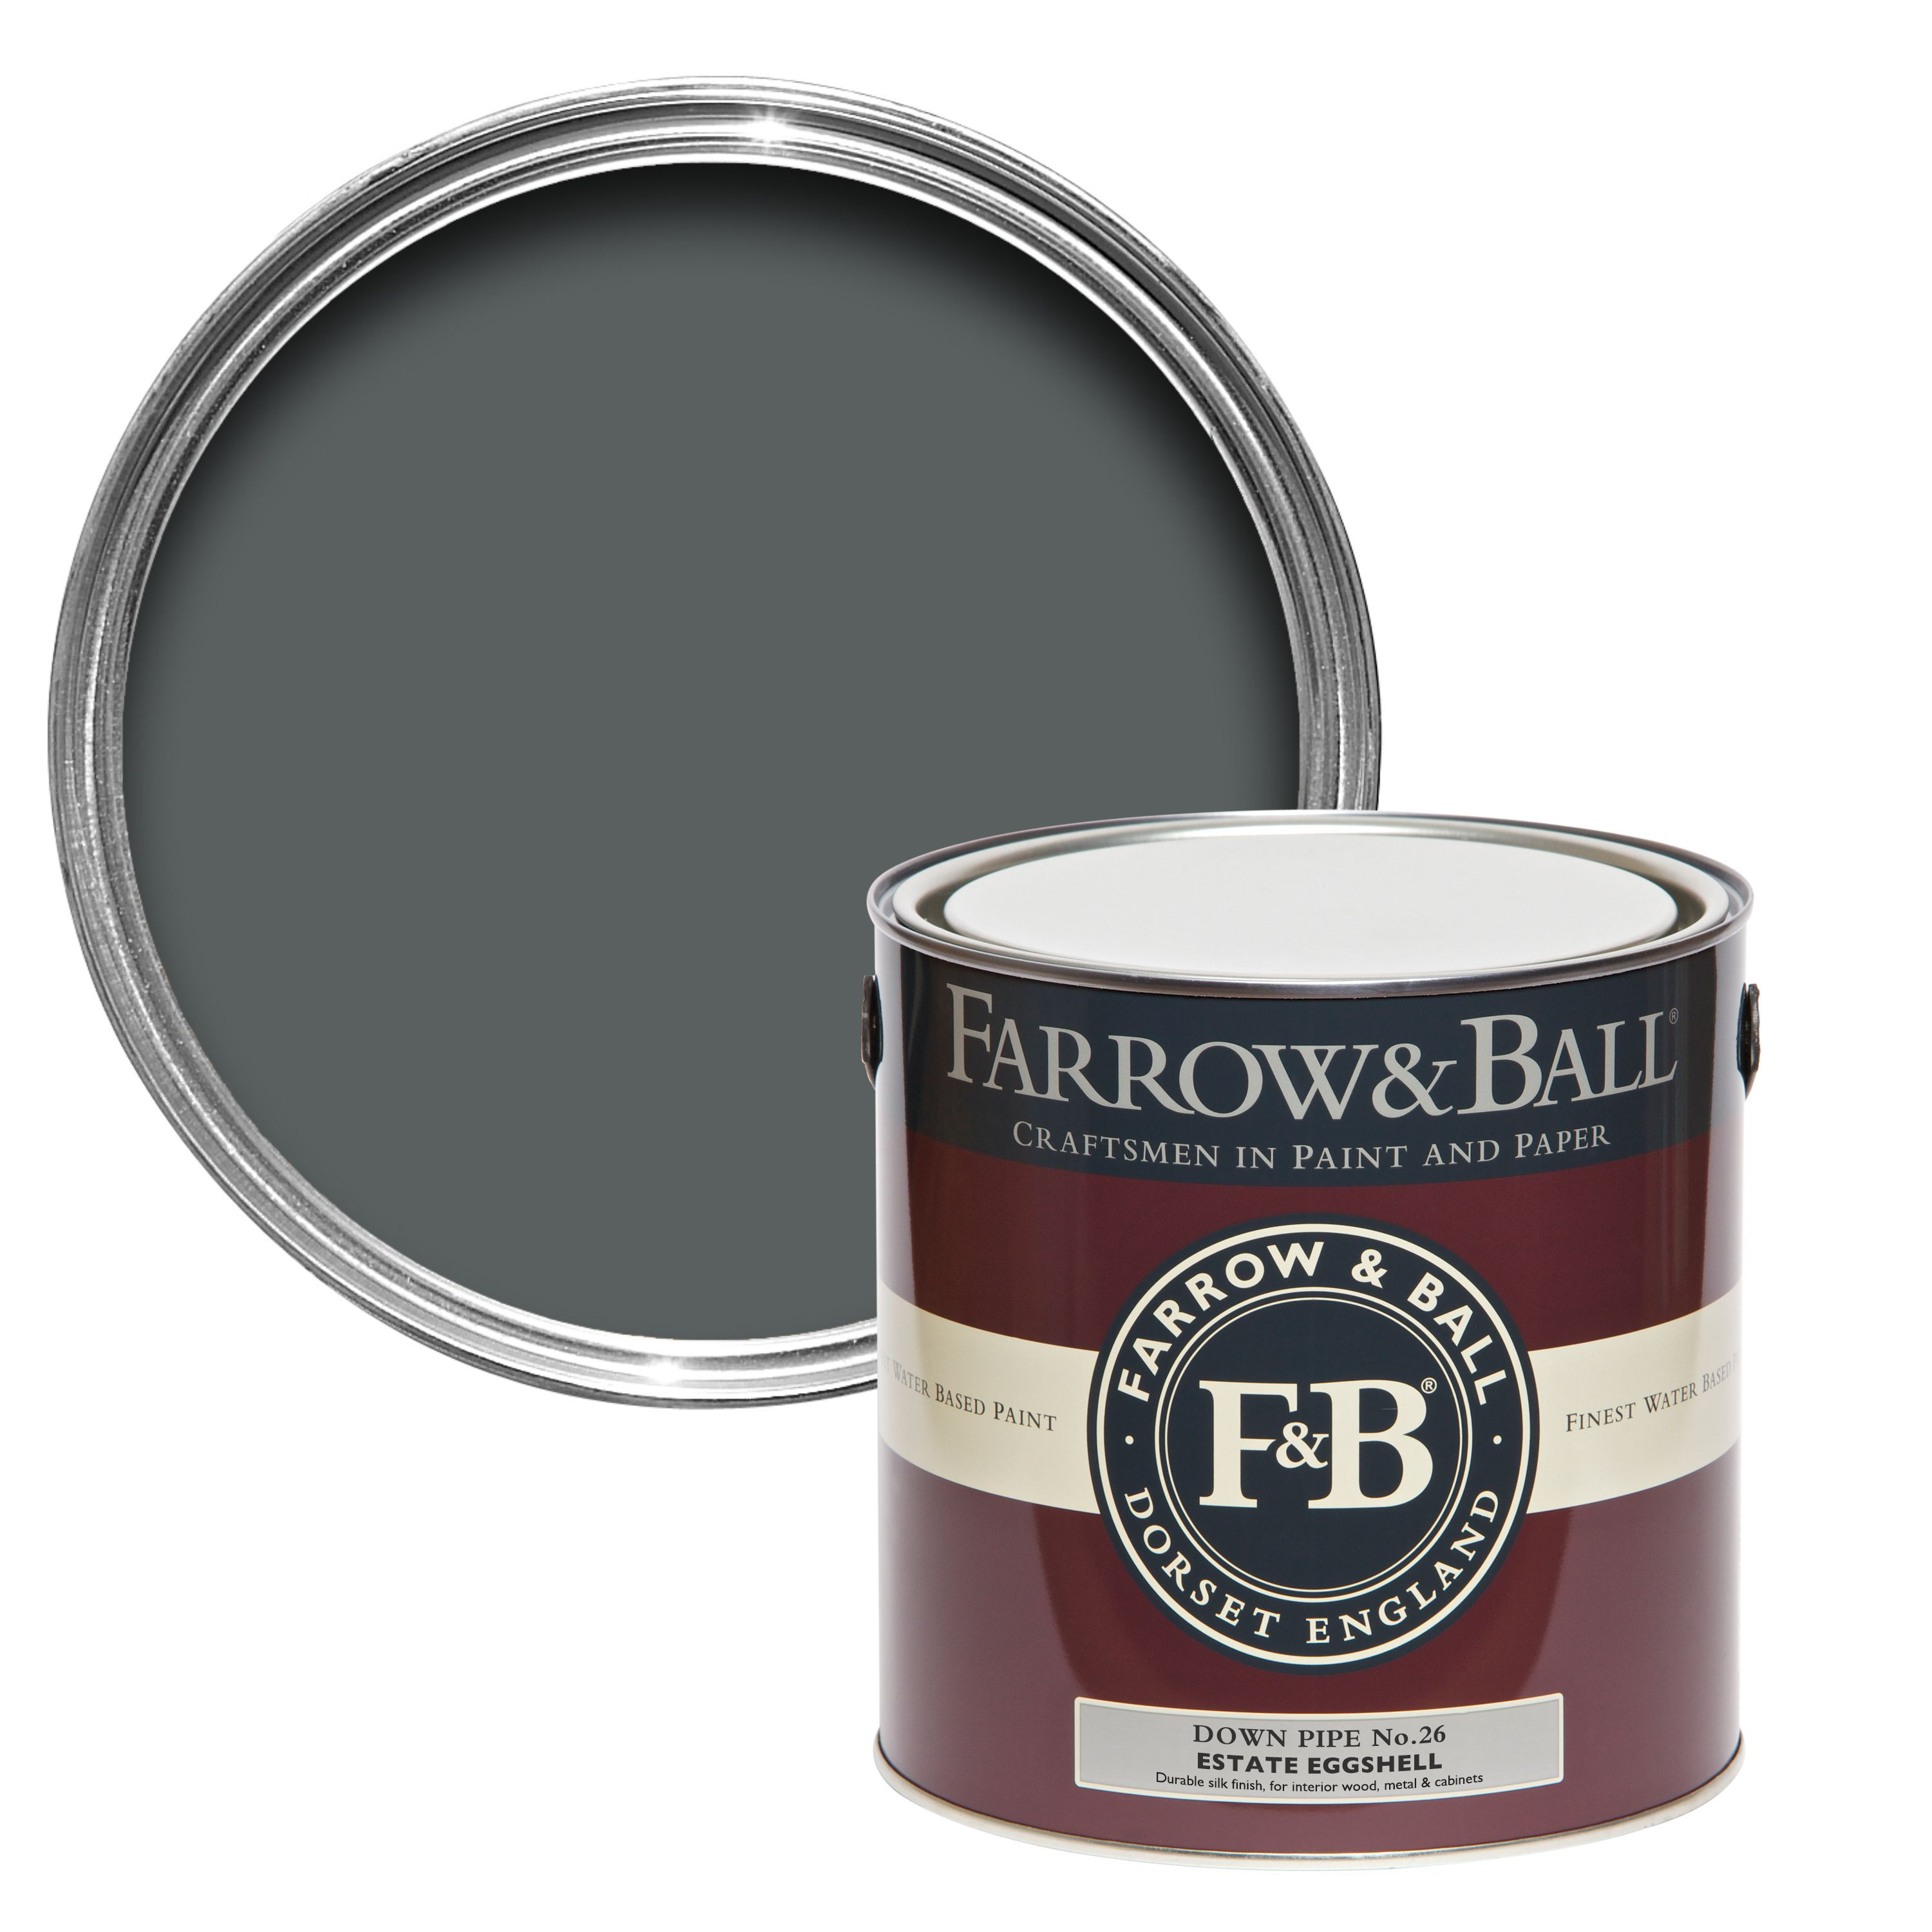 Farrow & Ball Down Pipe no.26 Estate Eggshell